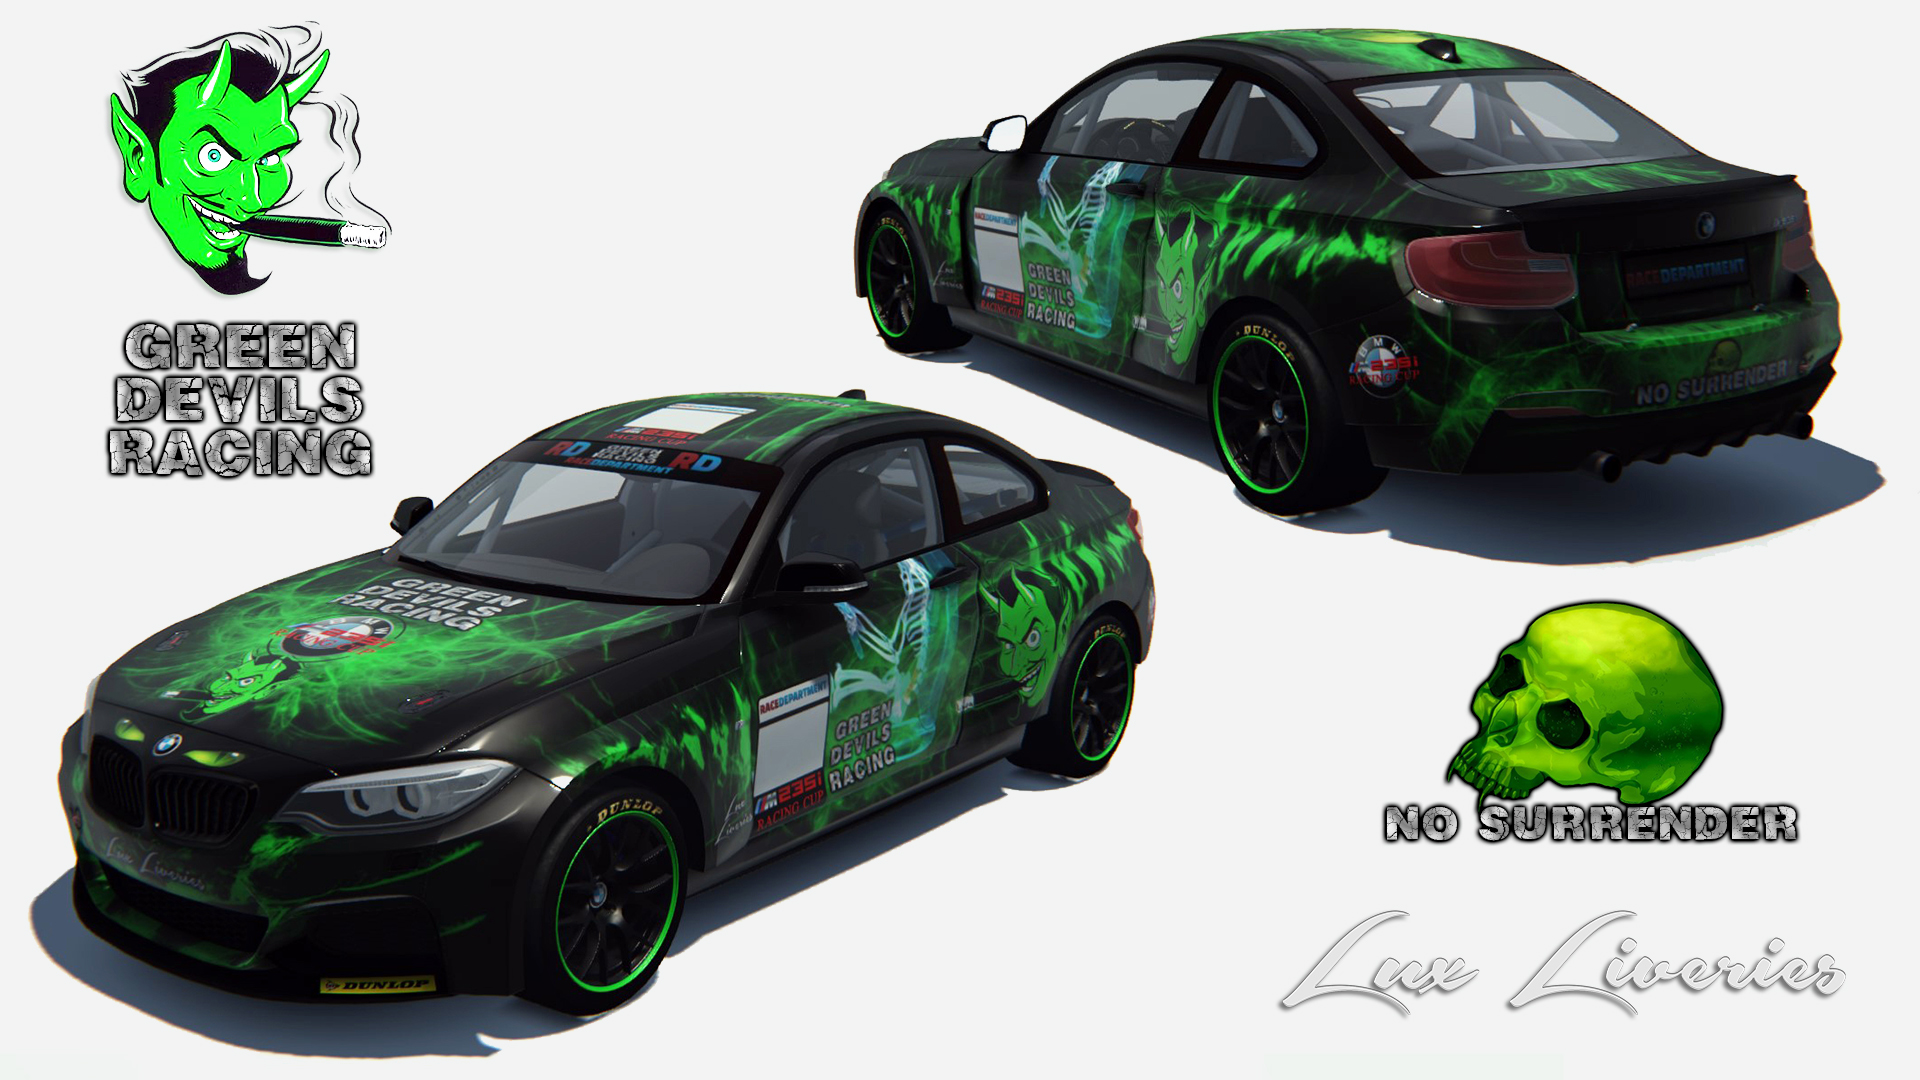 AC BMW 235i Green Devils Racing Livery